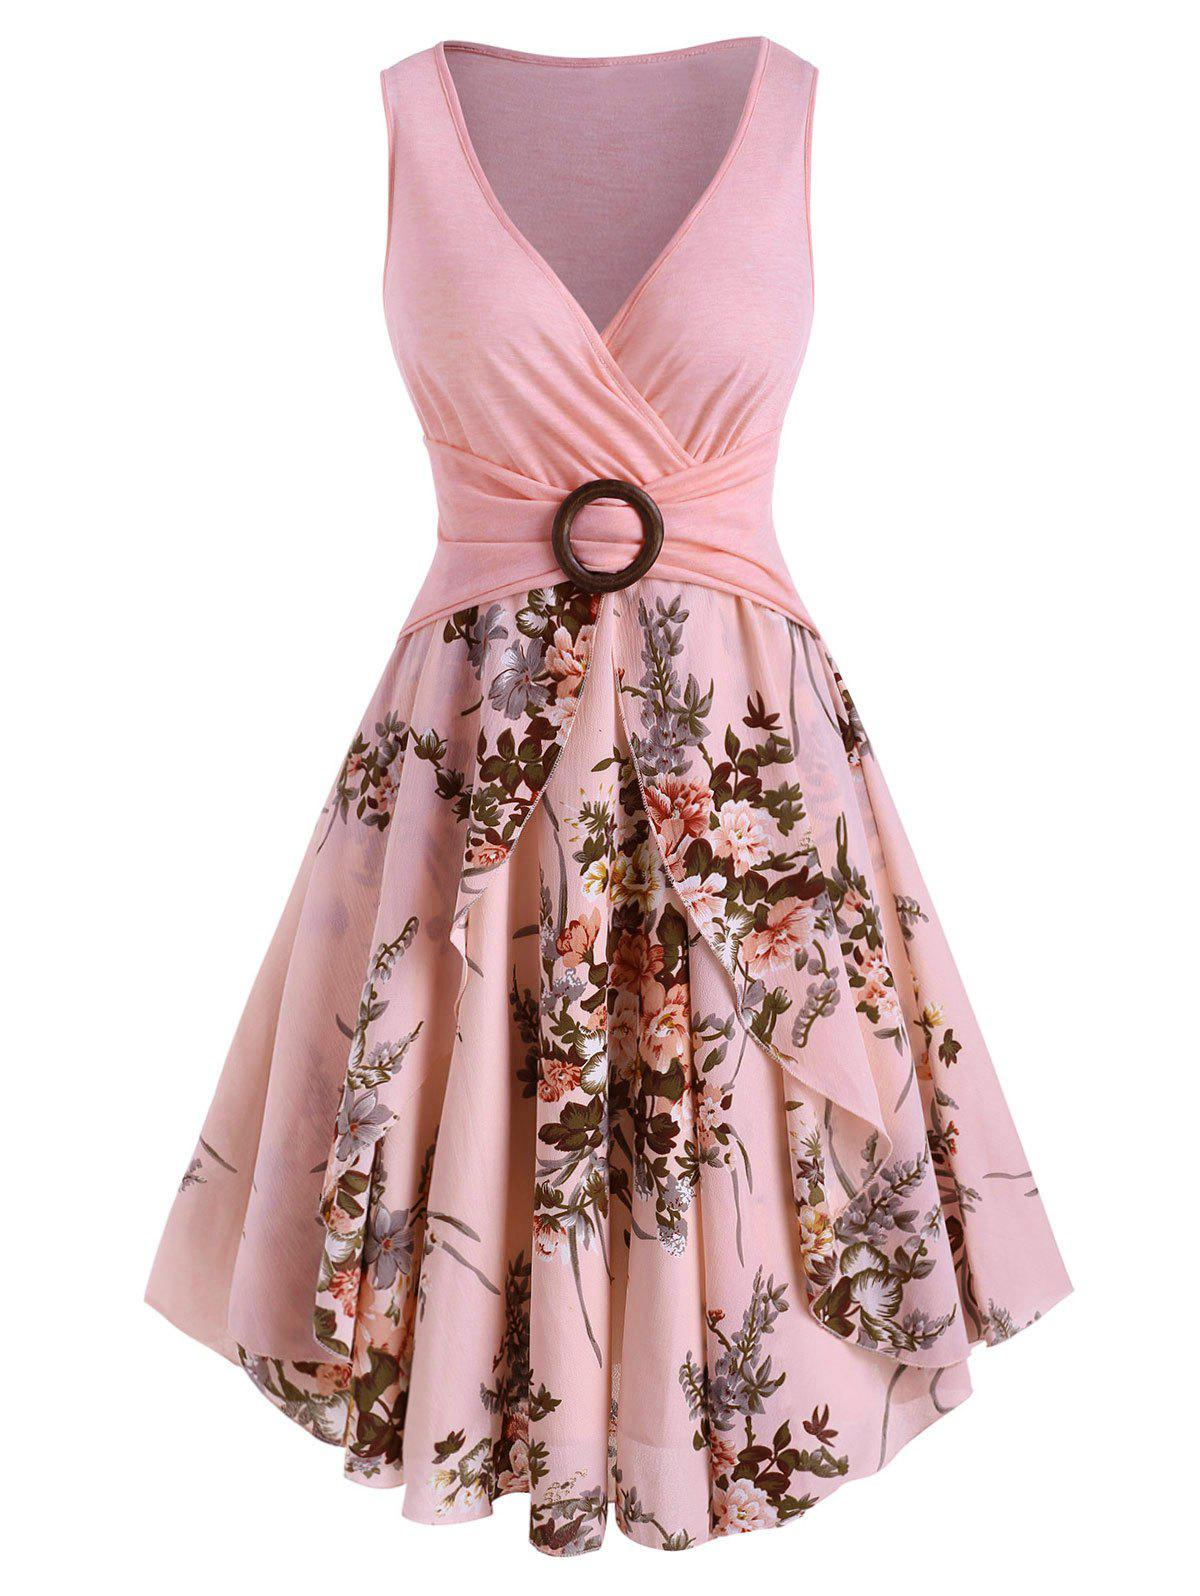 Flower Print O Ring High Waisted Surplice Dress - LIGHT PINK S